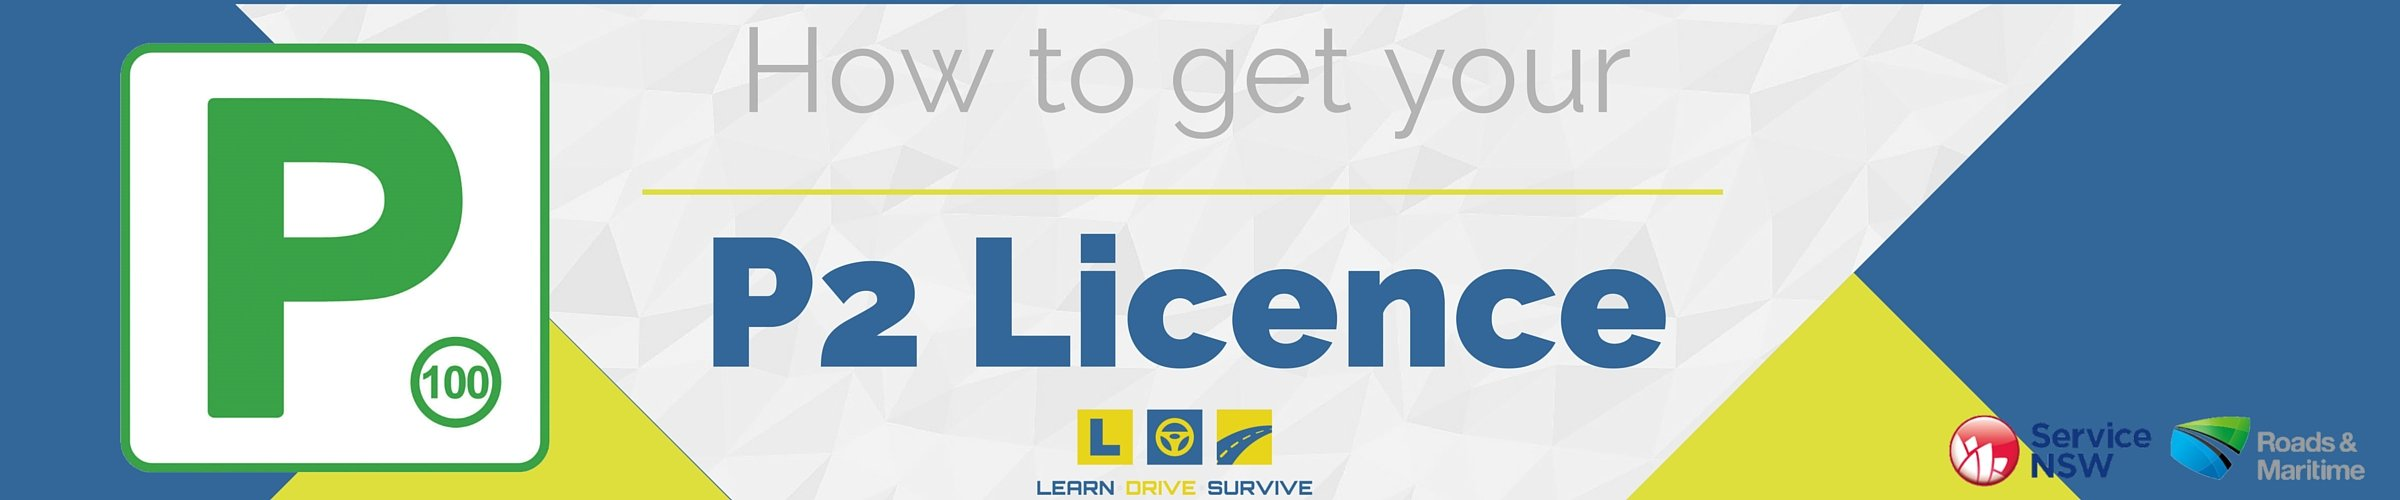 How to get your P2 licence